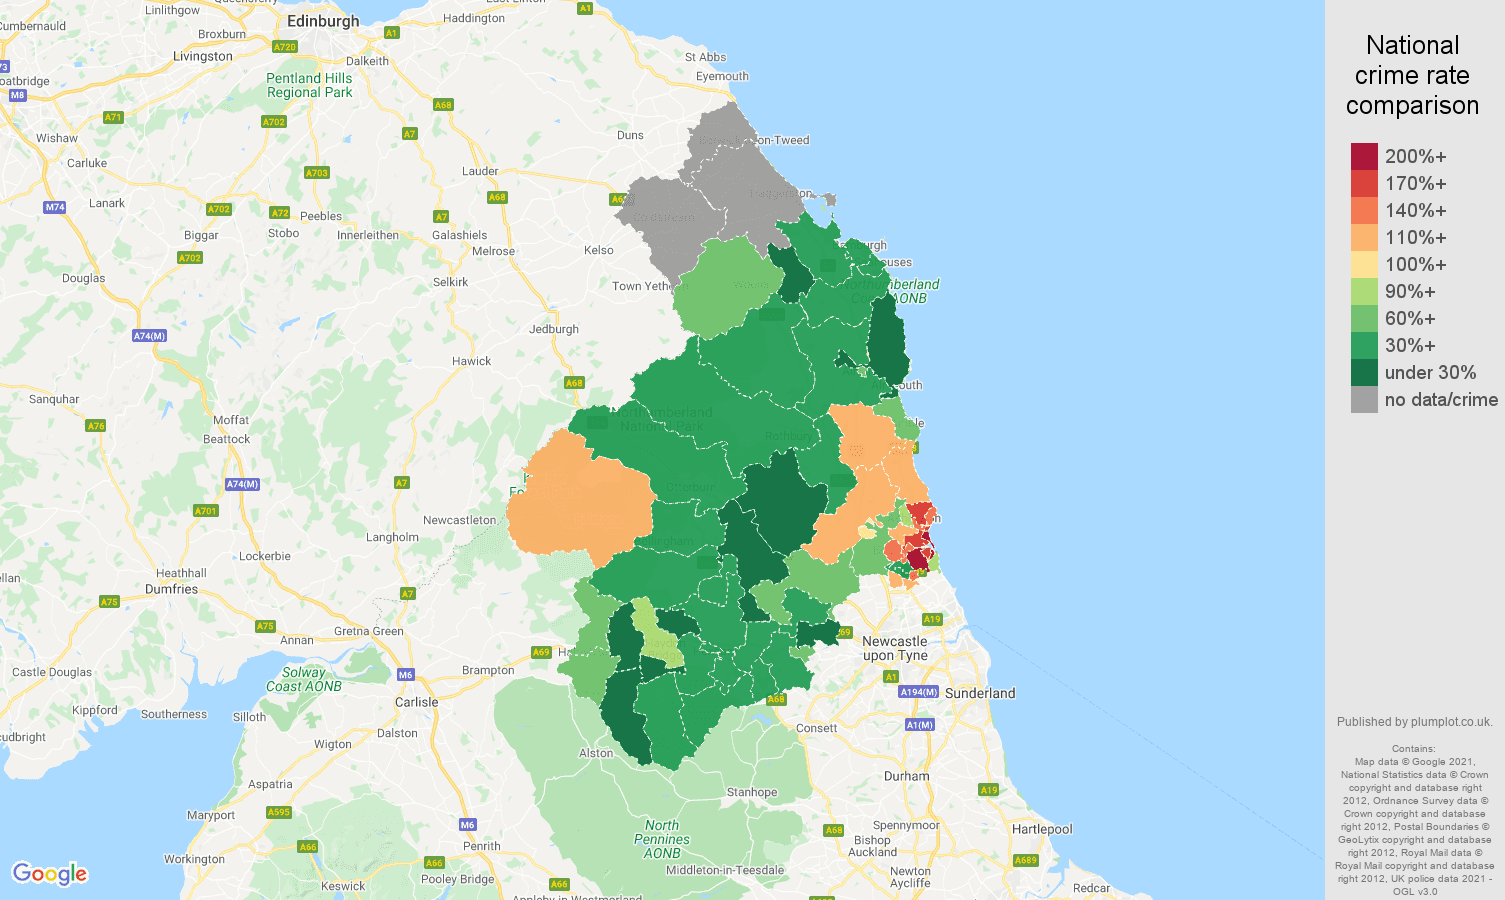 Northumberland violent crime rate comparison map